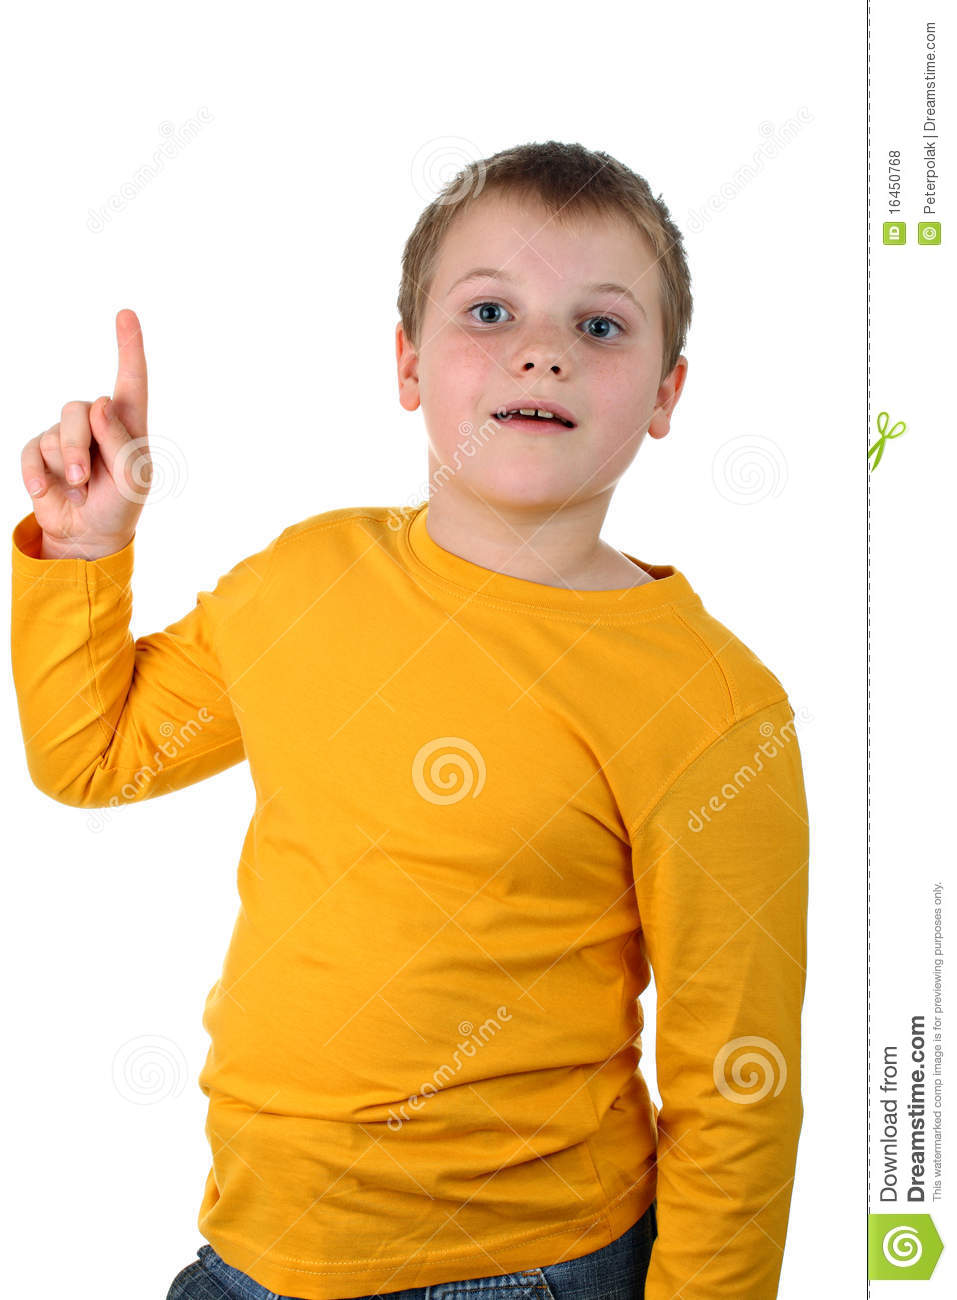 Portraits of a preteen boy wearing yellow top, both his index finger ...